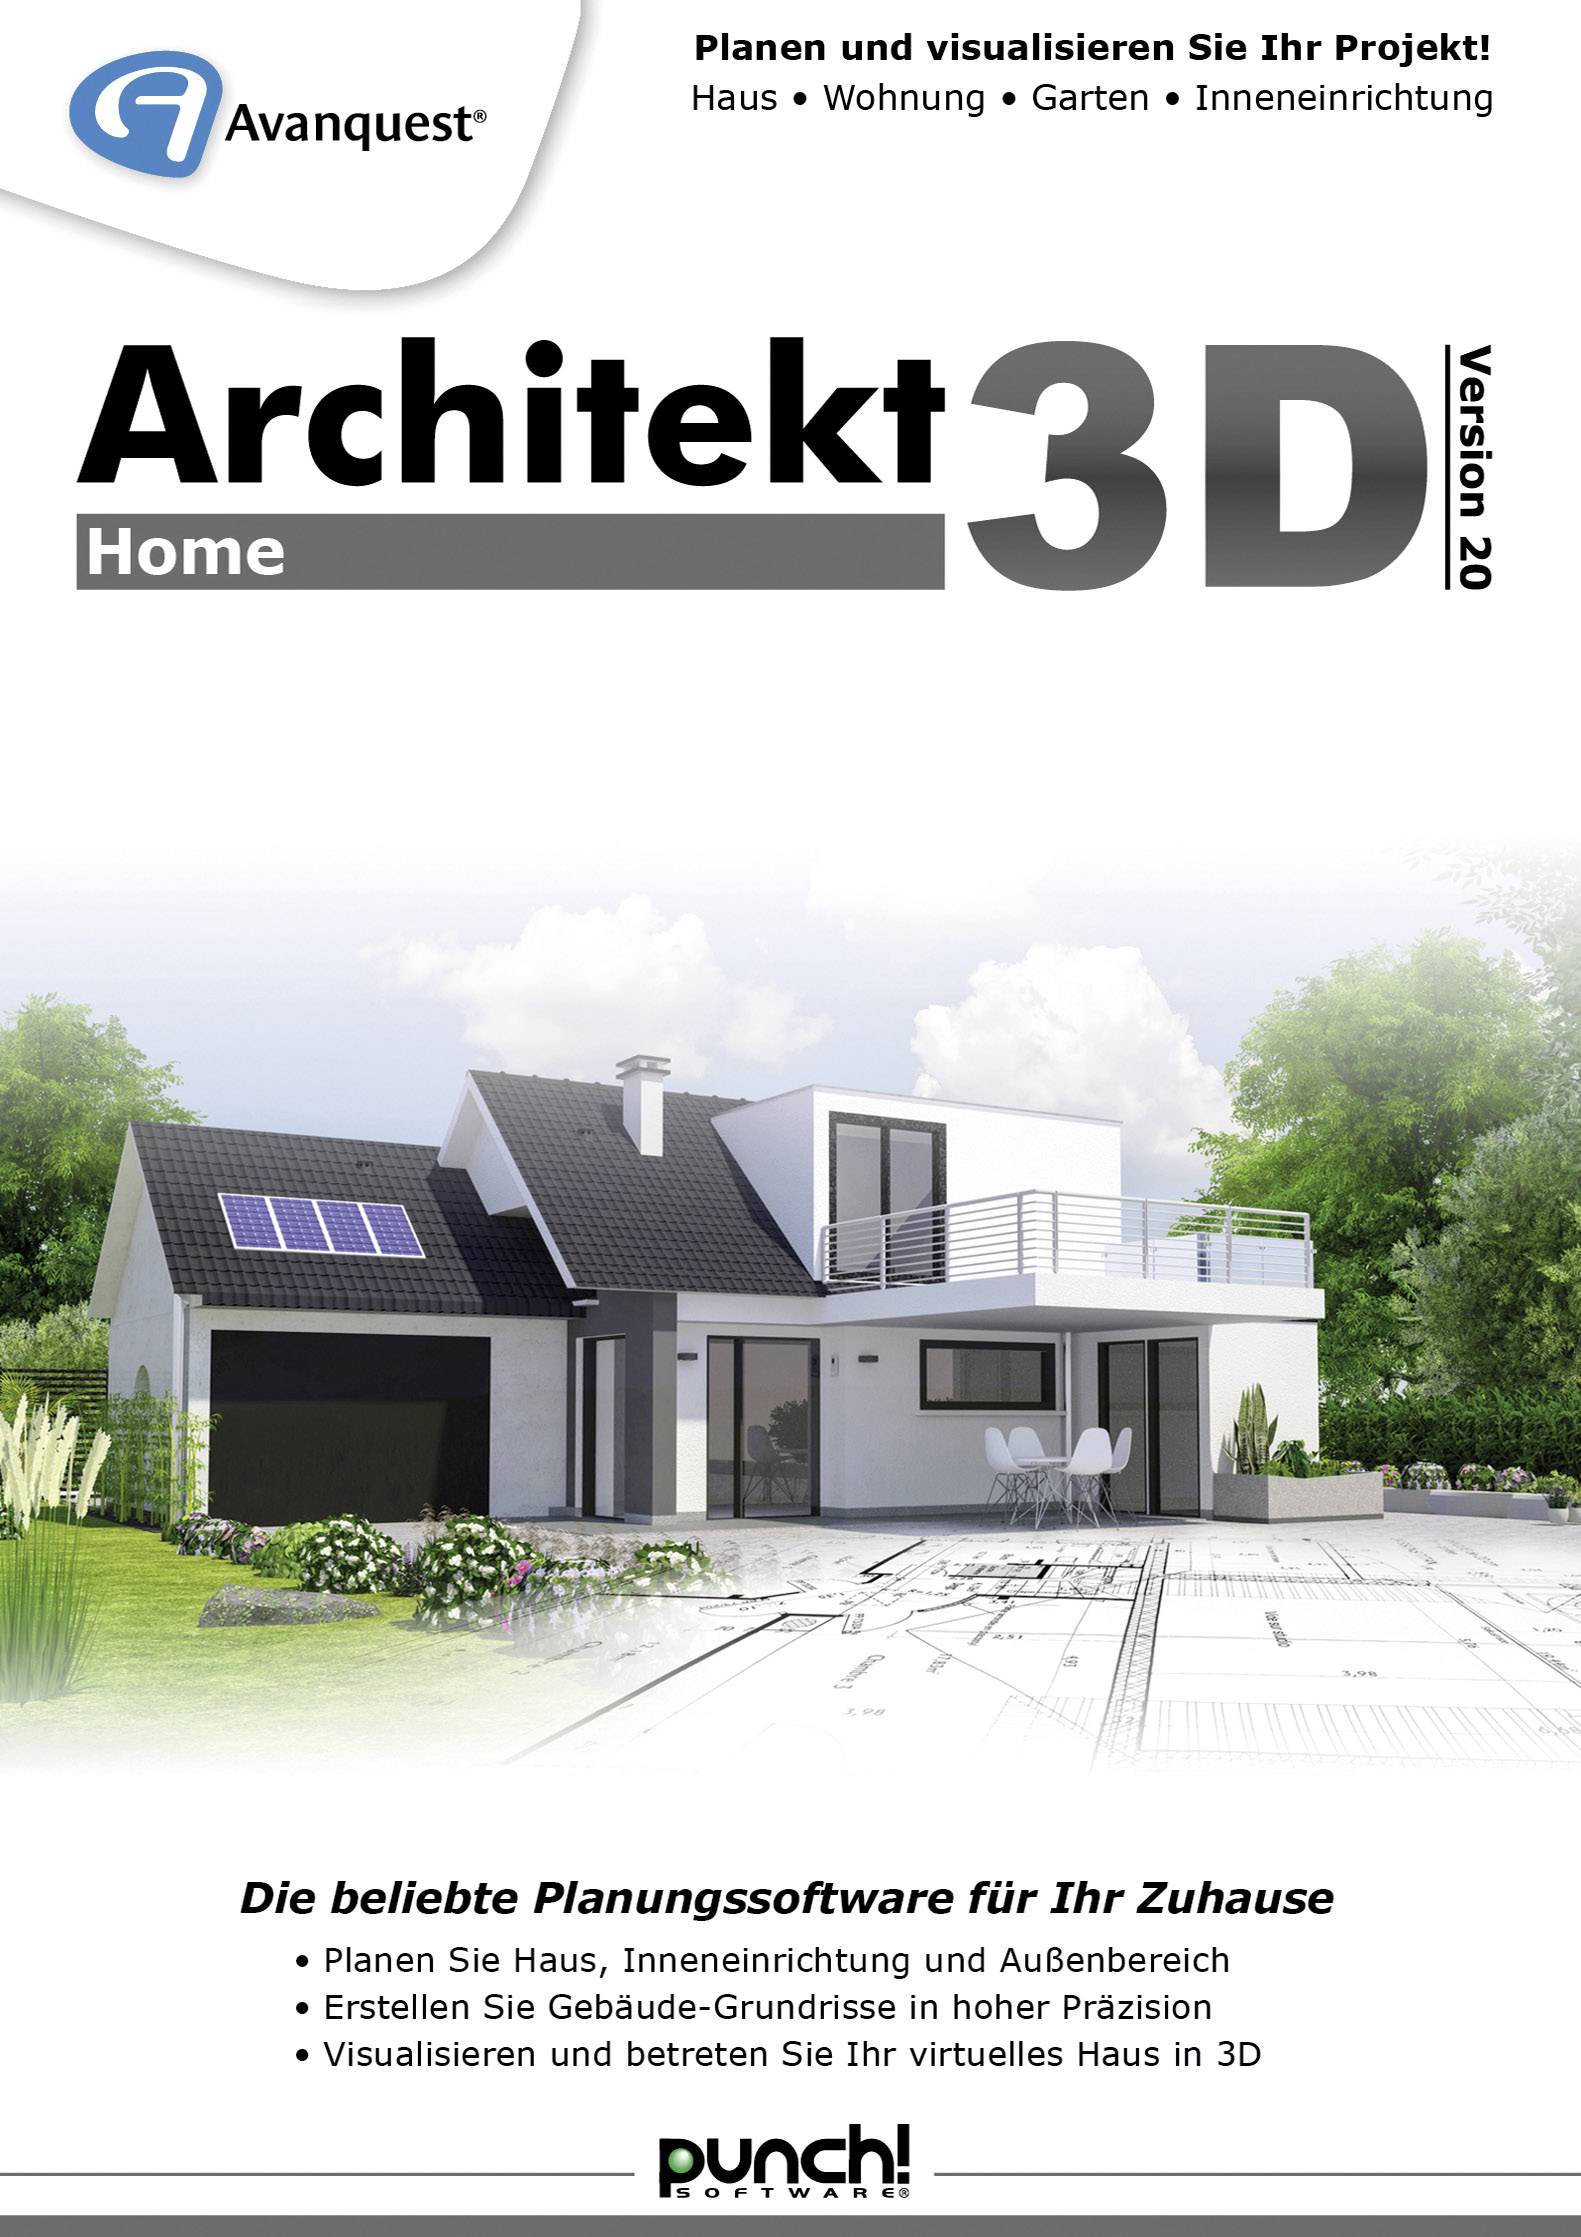 3d Architekt Avanquest Architekt 3d 20 Home Full Version 1 License Windows Planning